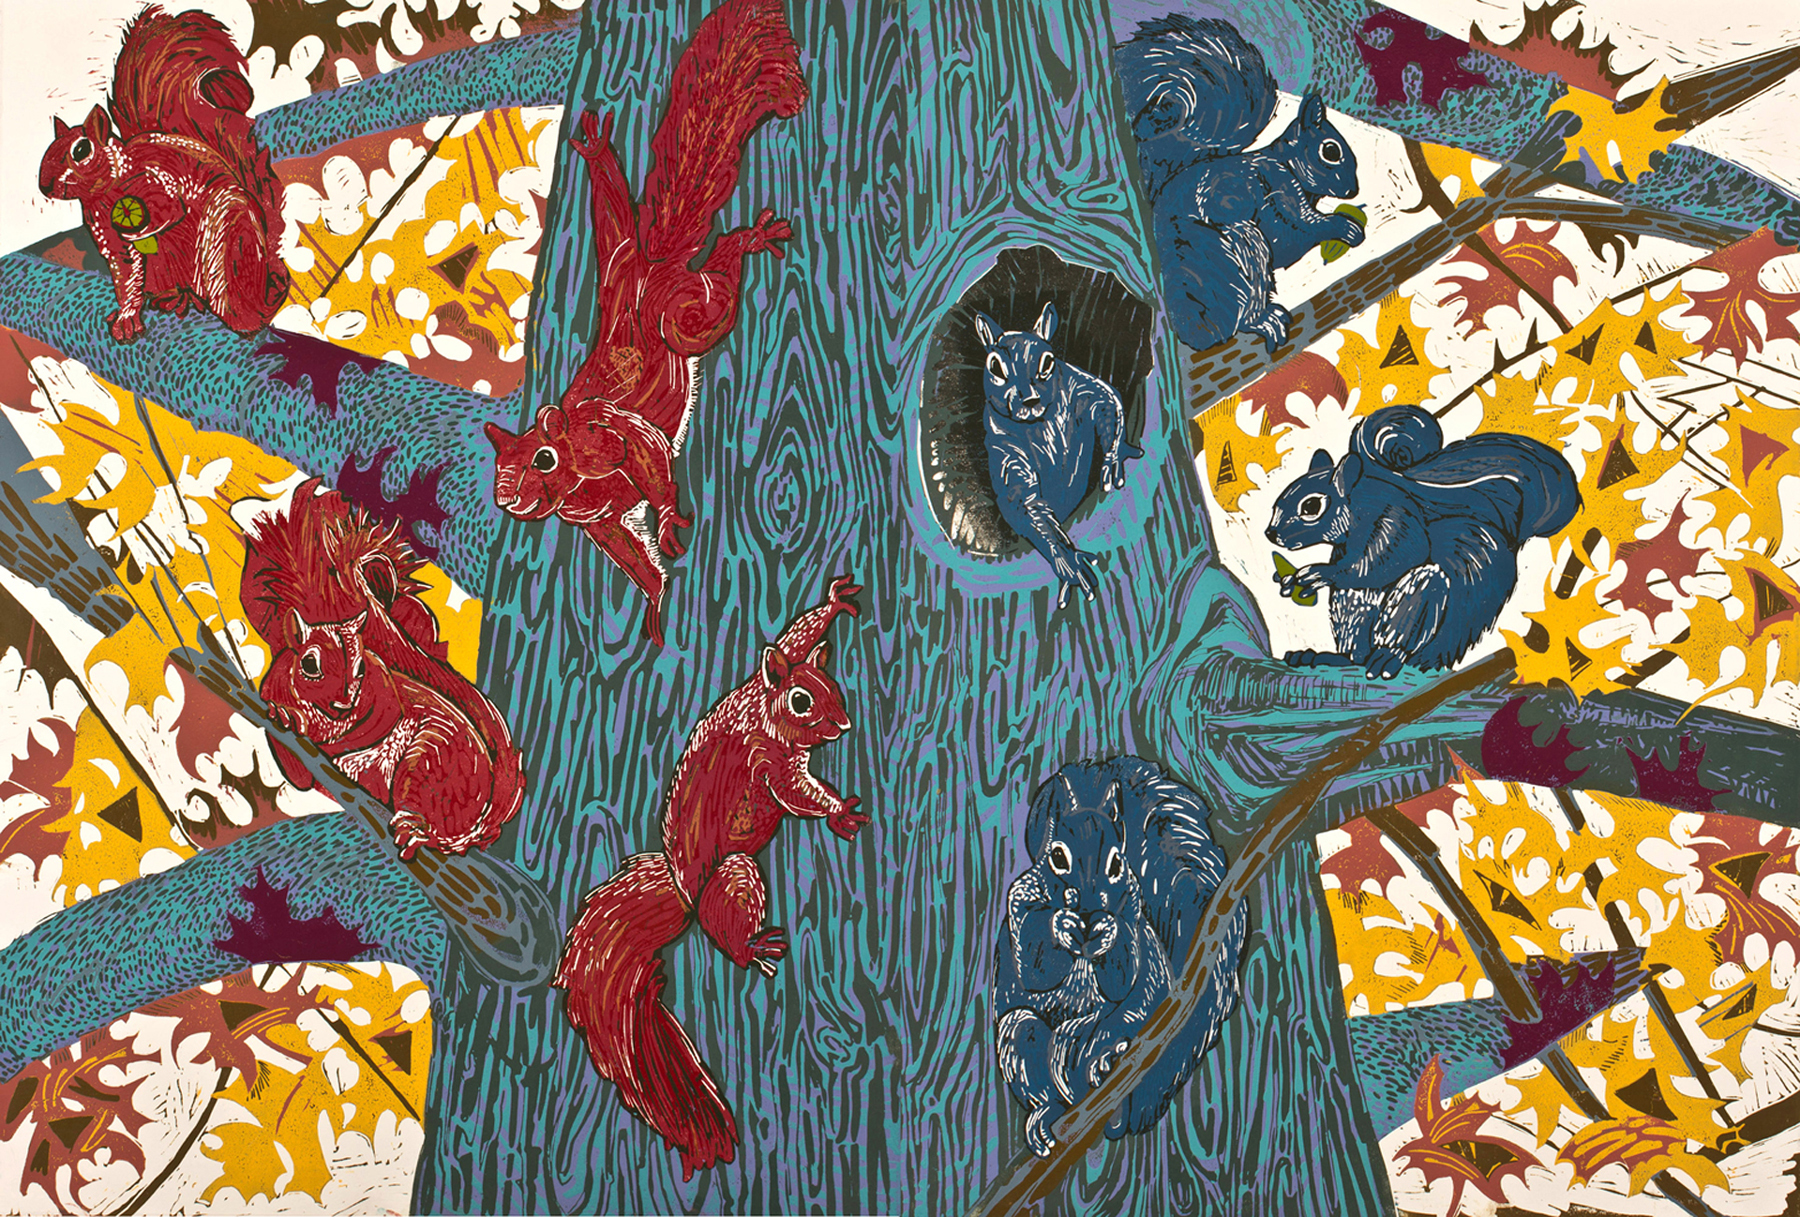 "Red Squirrels, Blue Squirrels , reduction linoleum print on paper (diptych), 32"" x 45"", sold out"